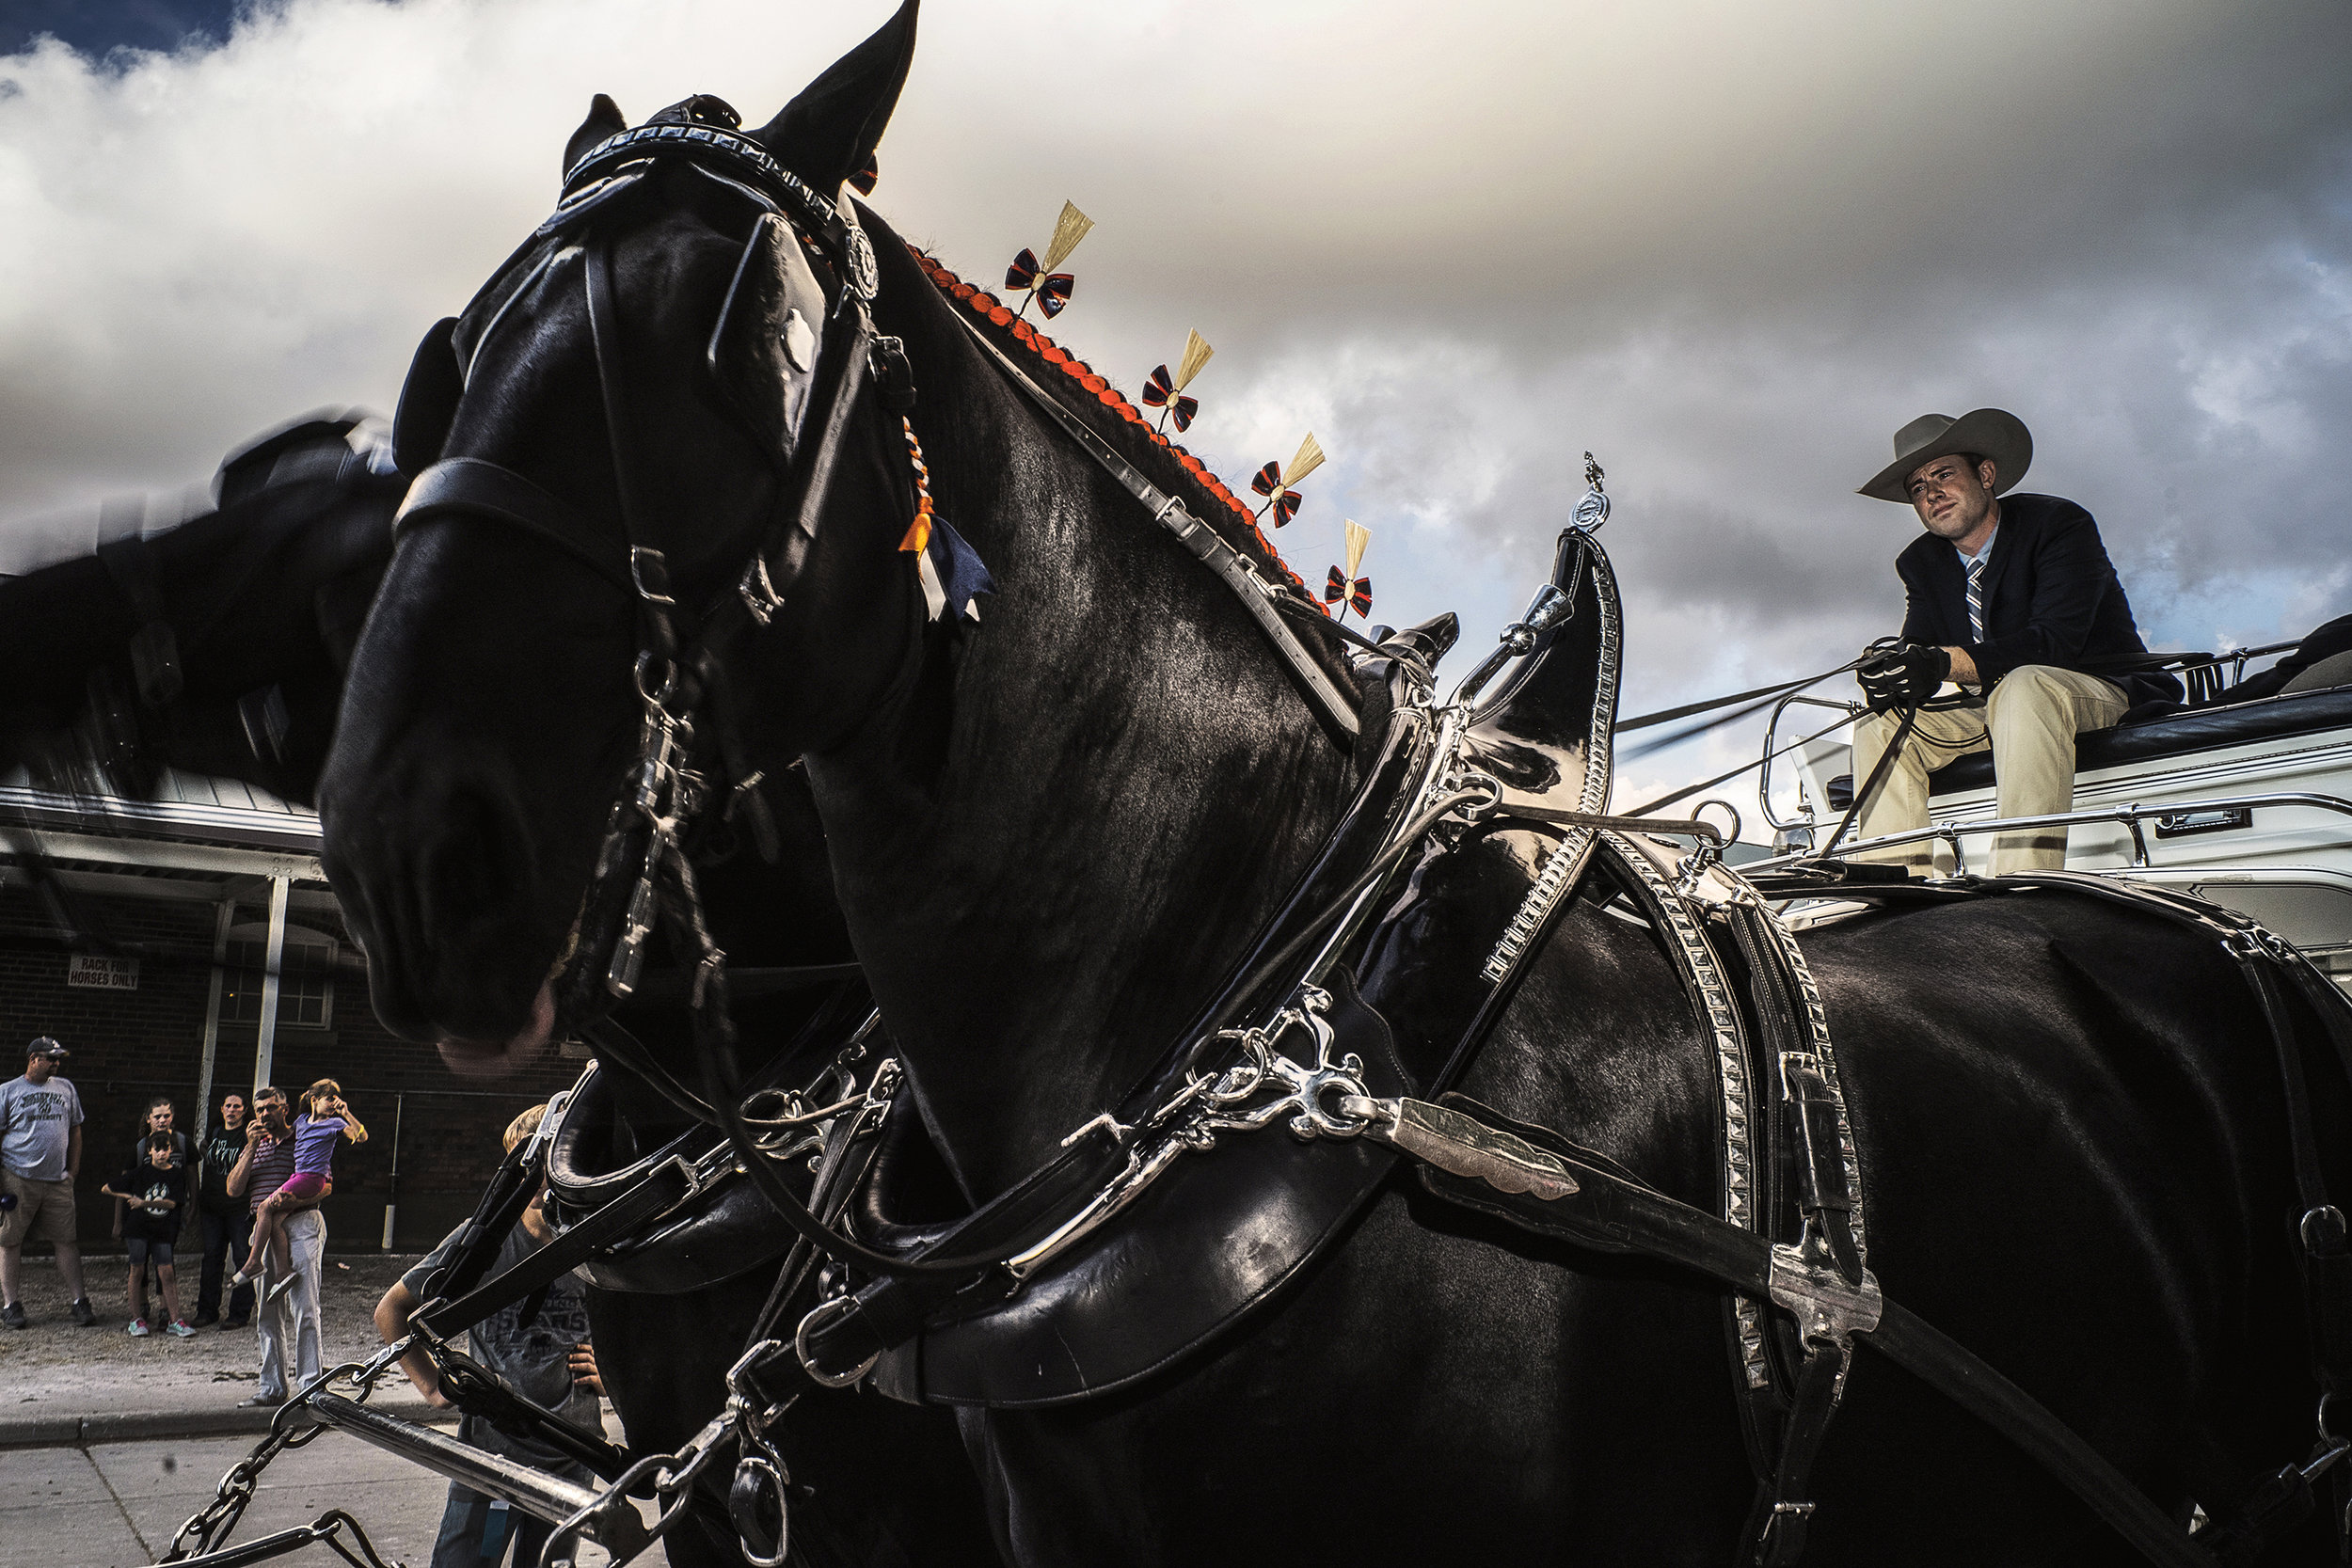 A coachman waits in line with his draft horses for a competition at the Jacobson Exhibition Center during the Iowa State Fair on Thursday, Aug. 16, 2018.